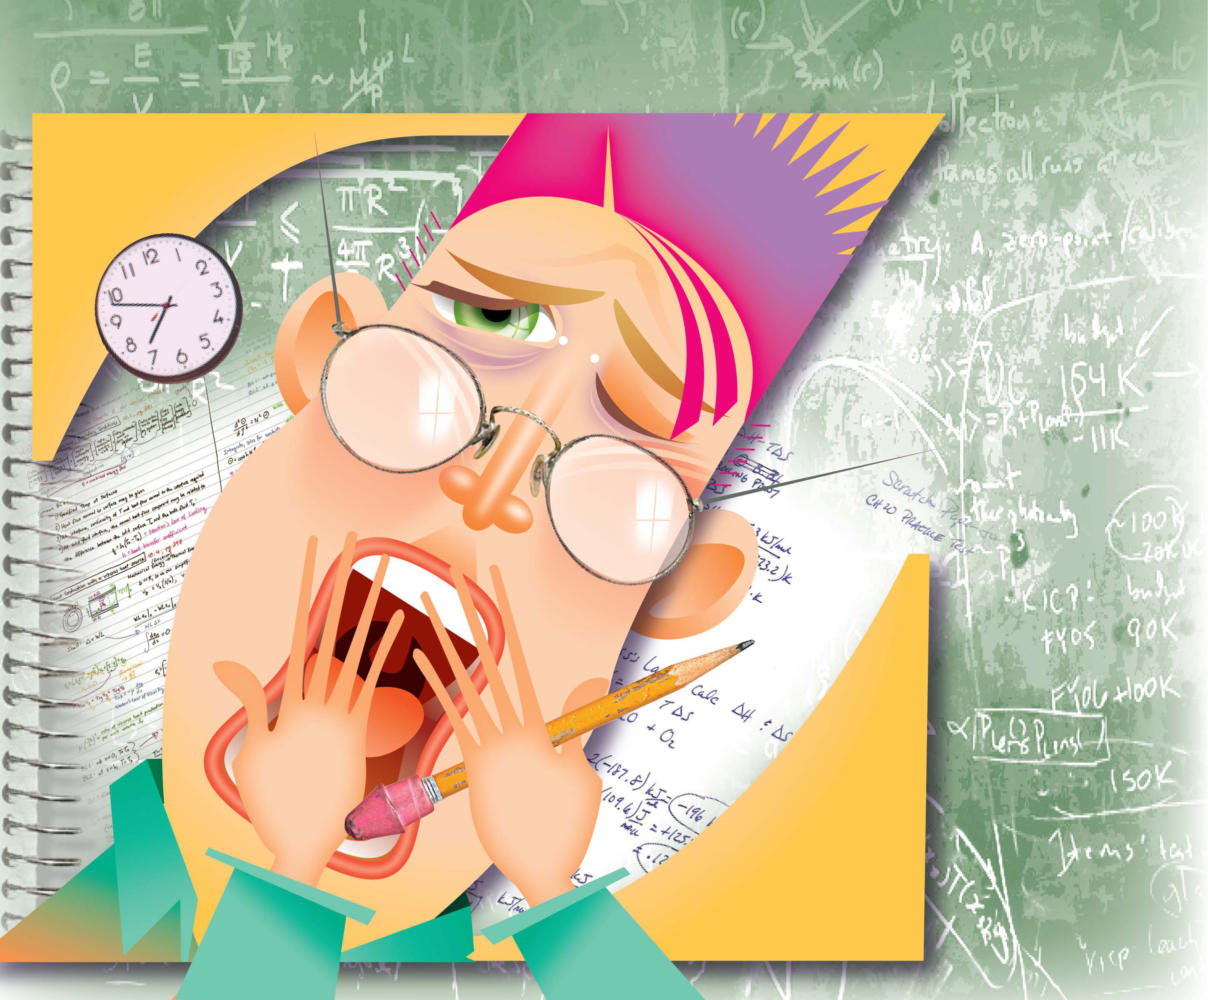 Laurie McAdam color illustration of yawning student with notebooks and chalkboard equations, tired from all night study session. The Modesto Bee 2008<p>